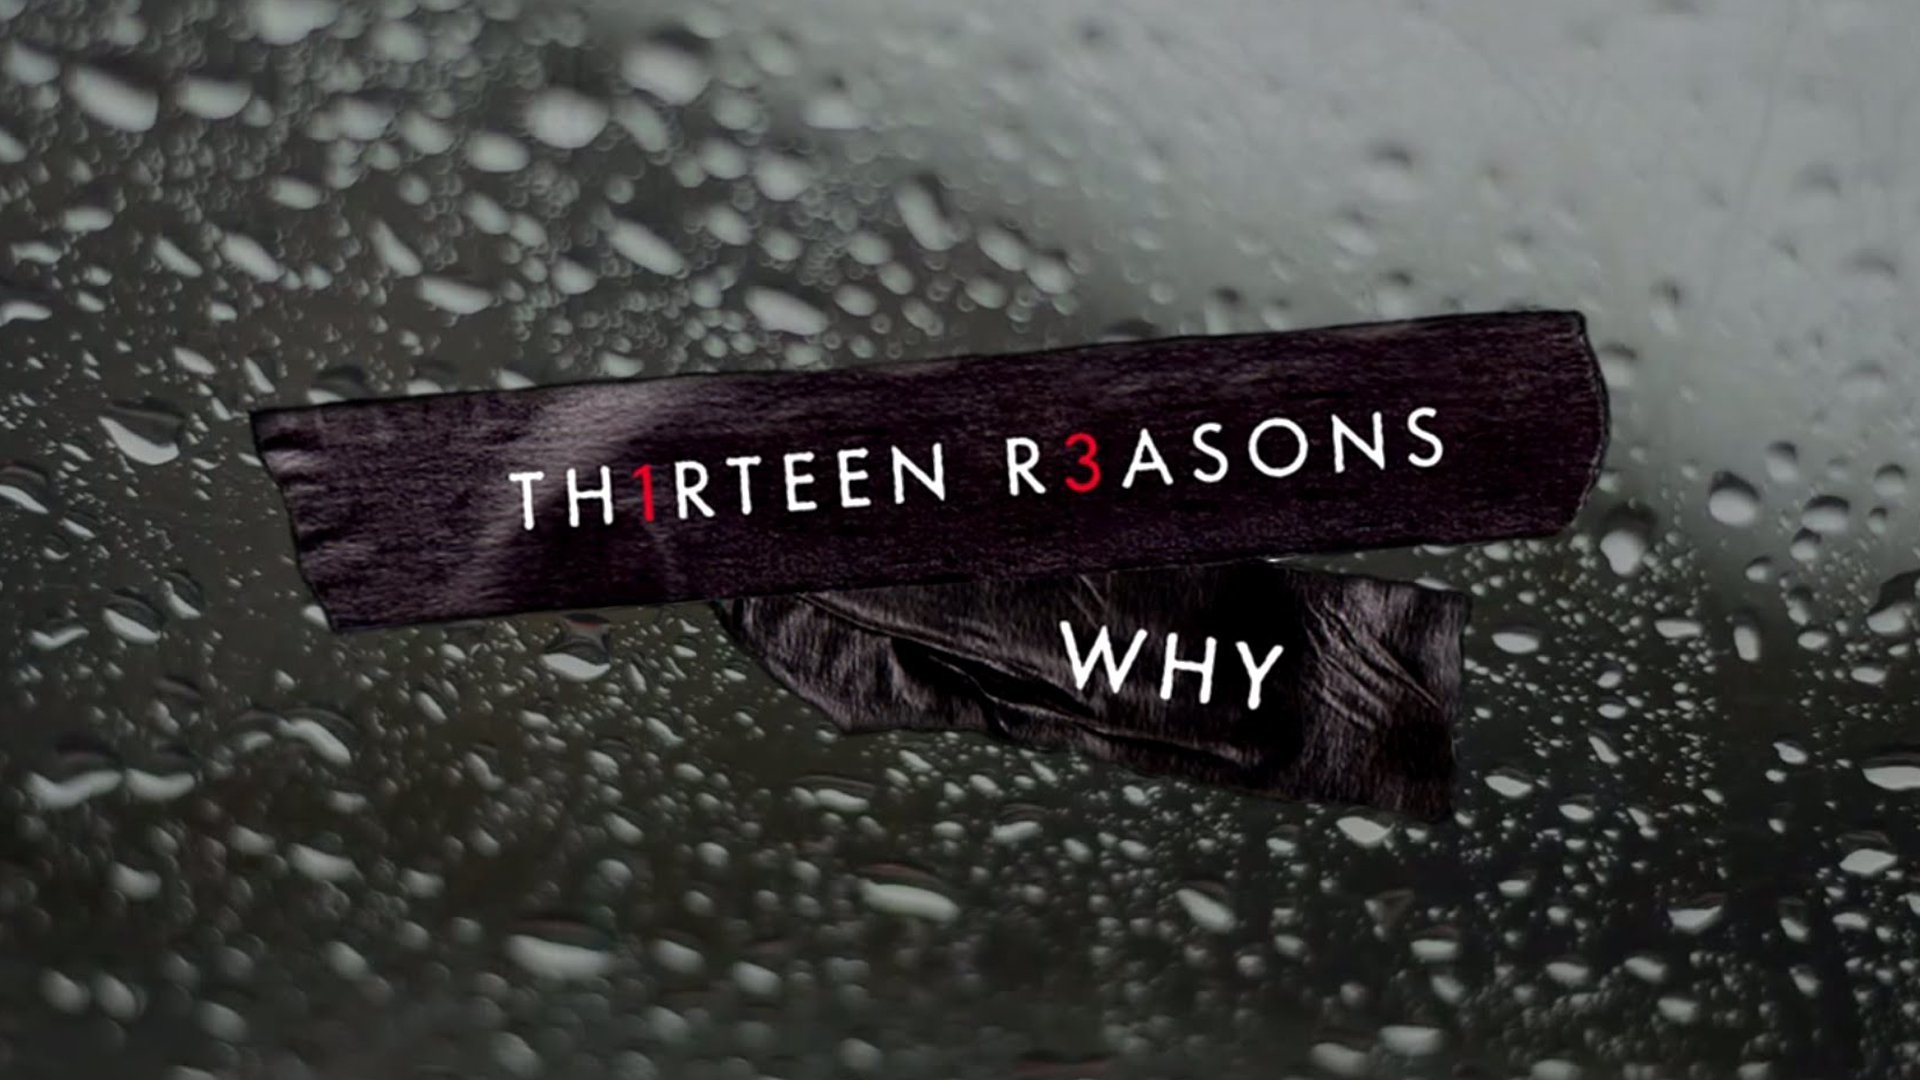 13 Reasons Why Fondo De Pantalla Hd Fondo De Escritorio